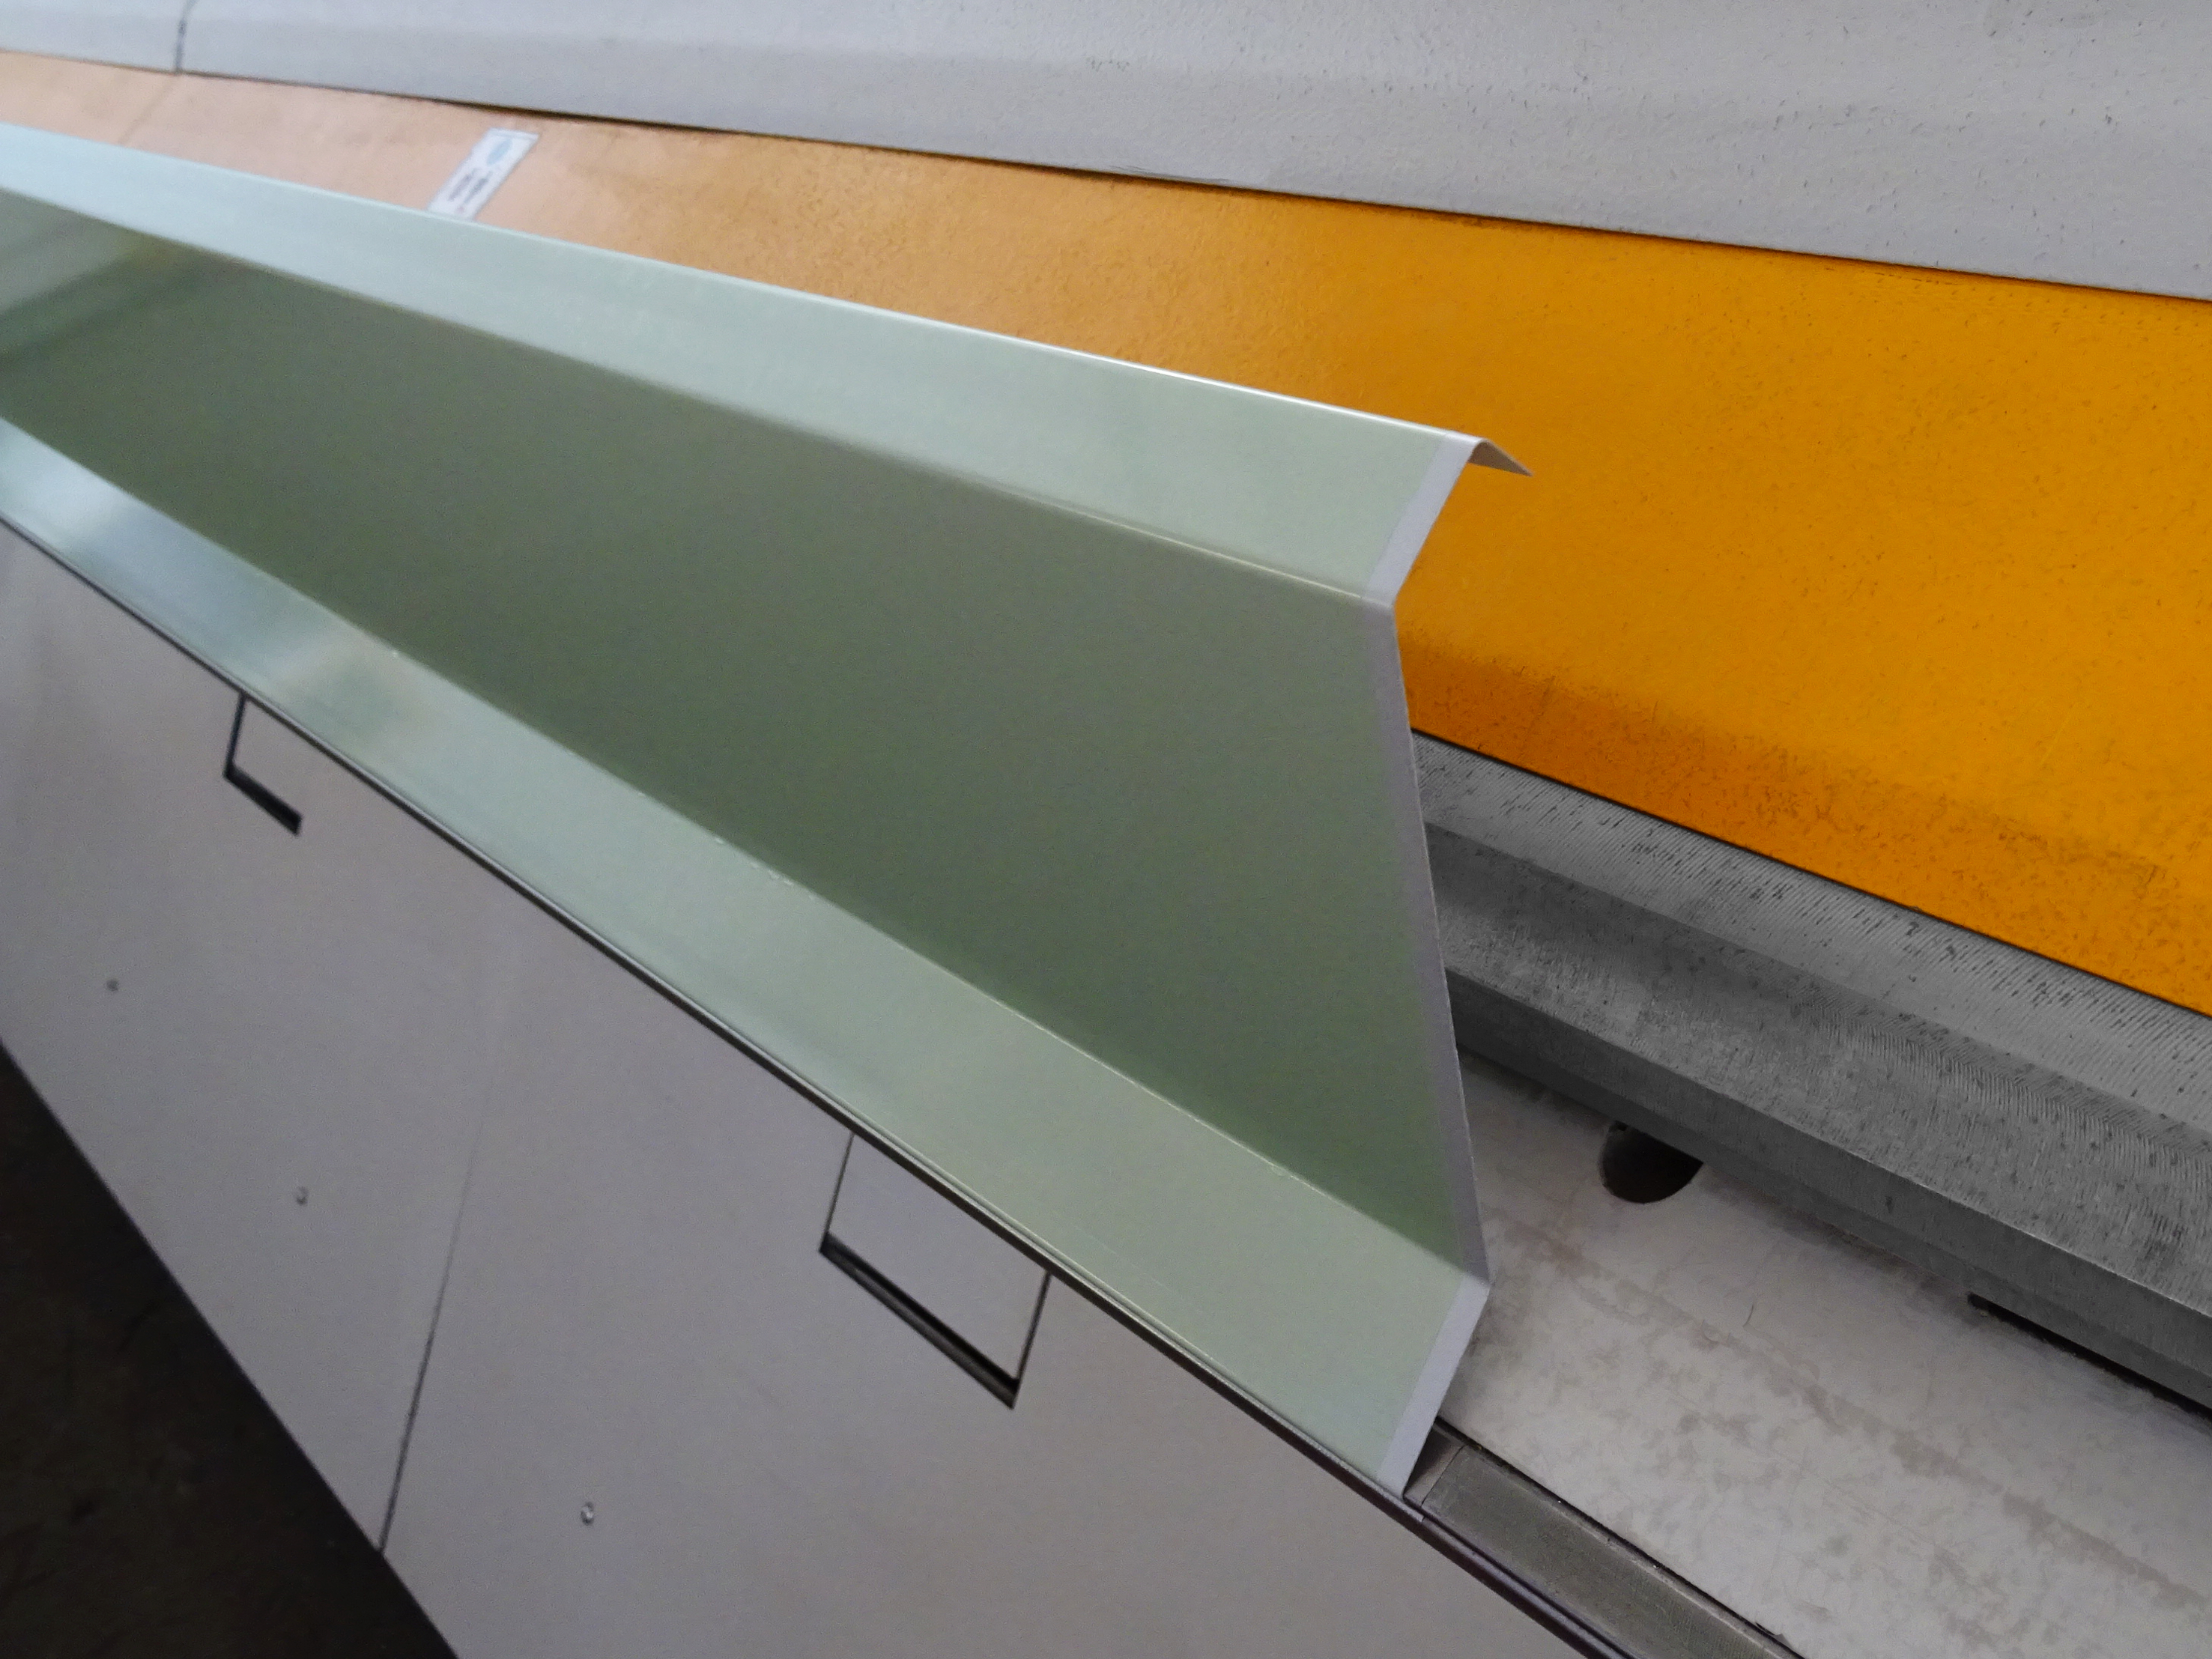 Automatic bending of a flashing by the XXL-Center